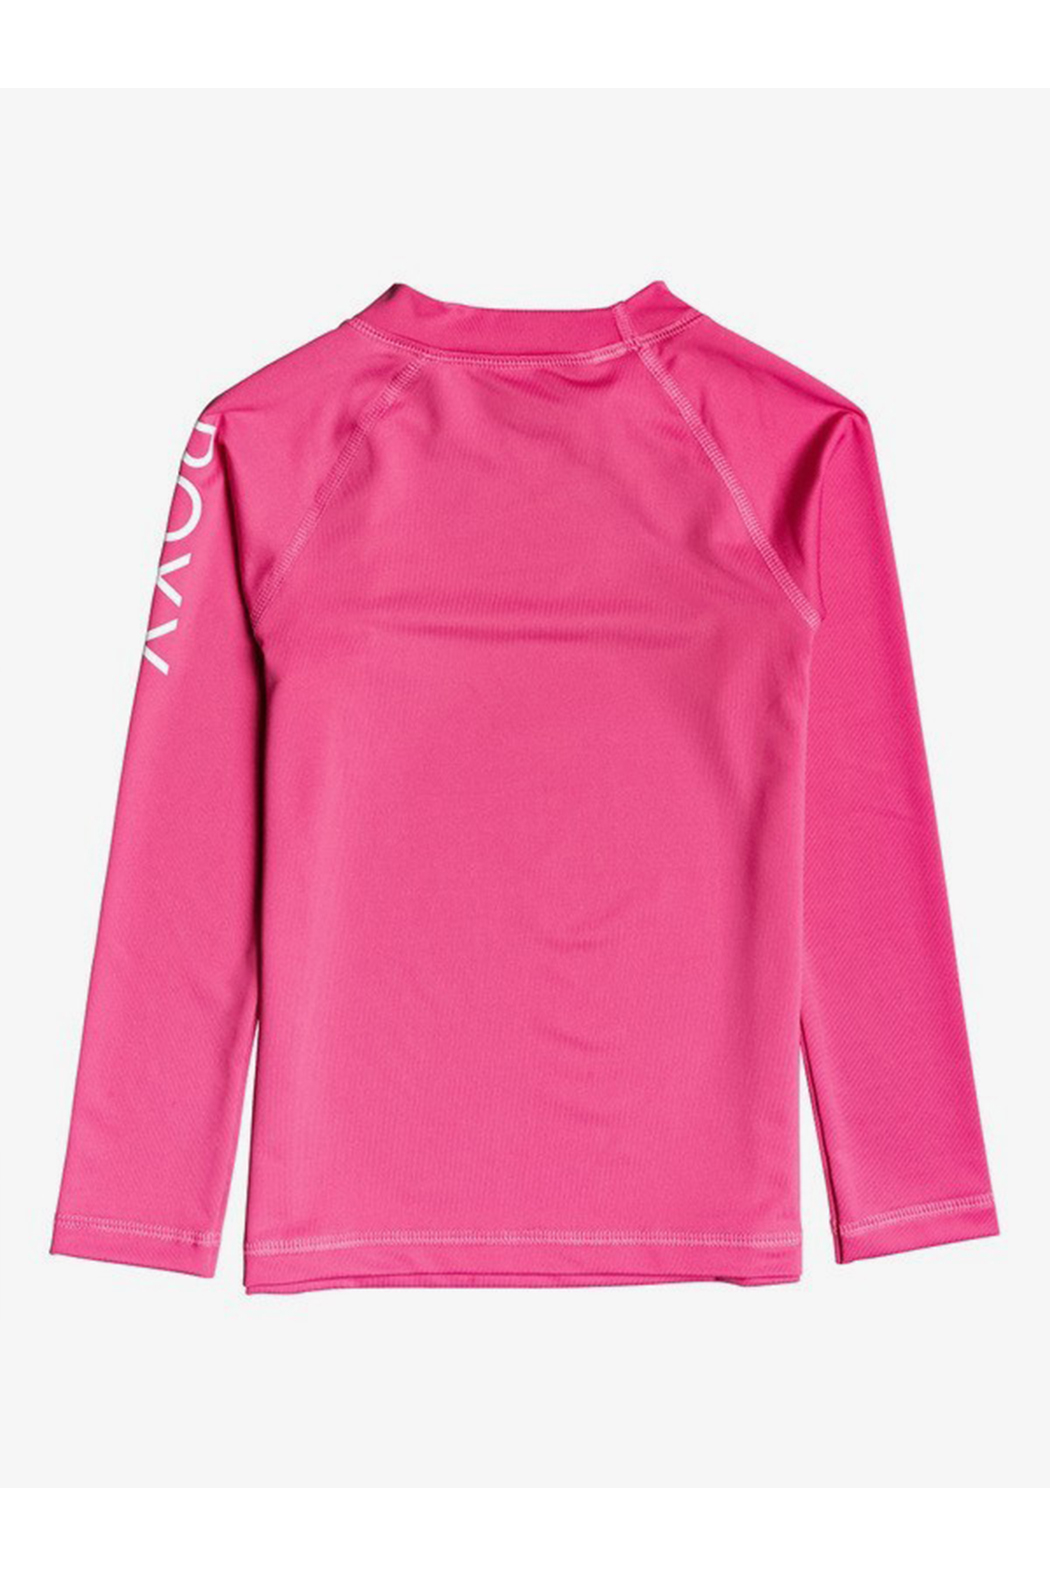 Roxy Whole Hearted Long Sleeve Rash Guard - Front Full Image